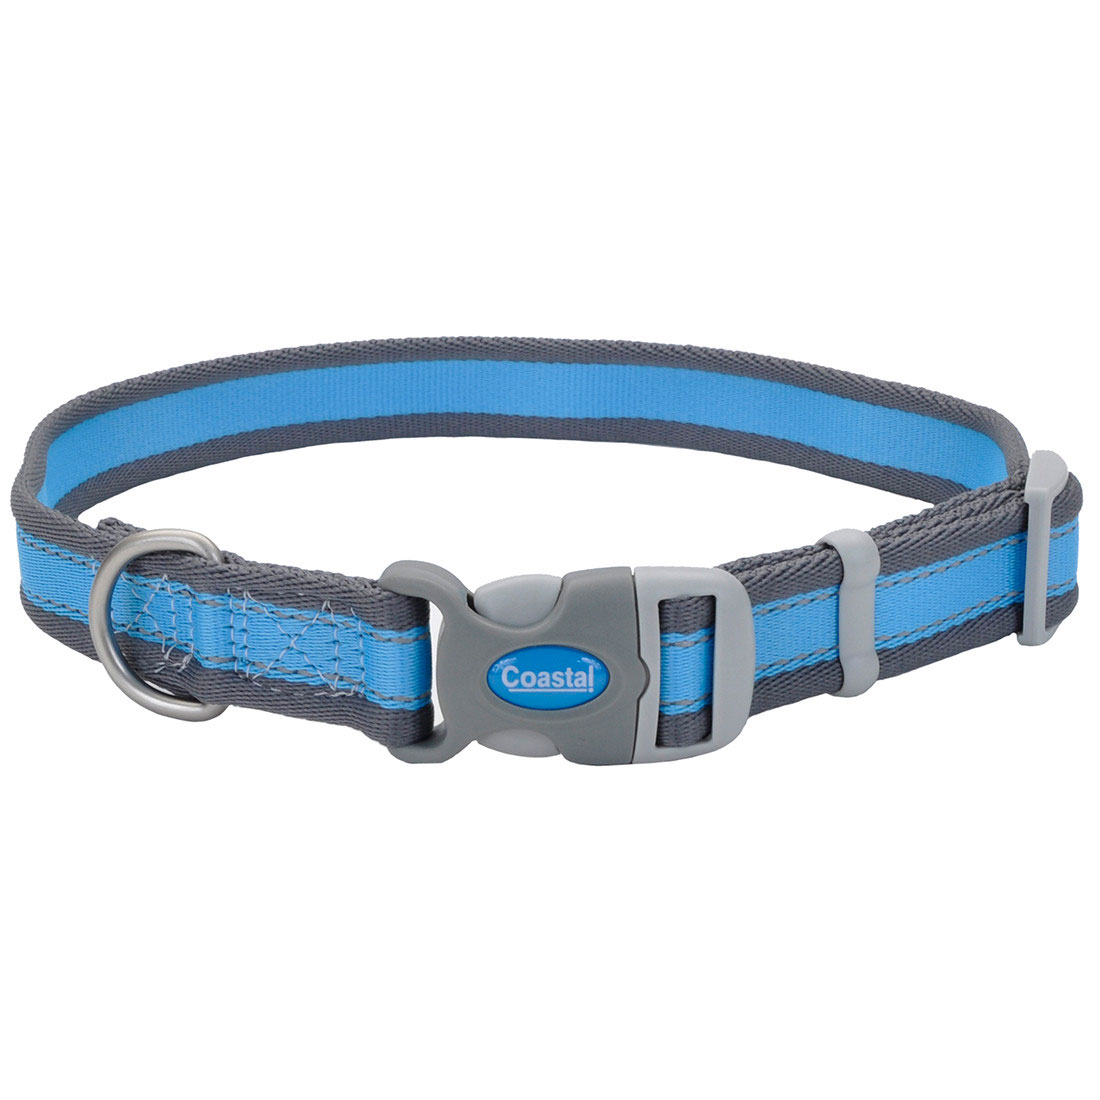 Pro Reflective Adjustable Dog Collar, Bright Blue with Grey, 1-inx18-26-in